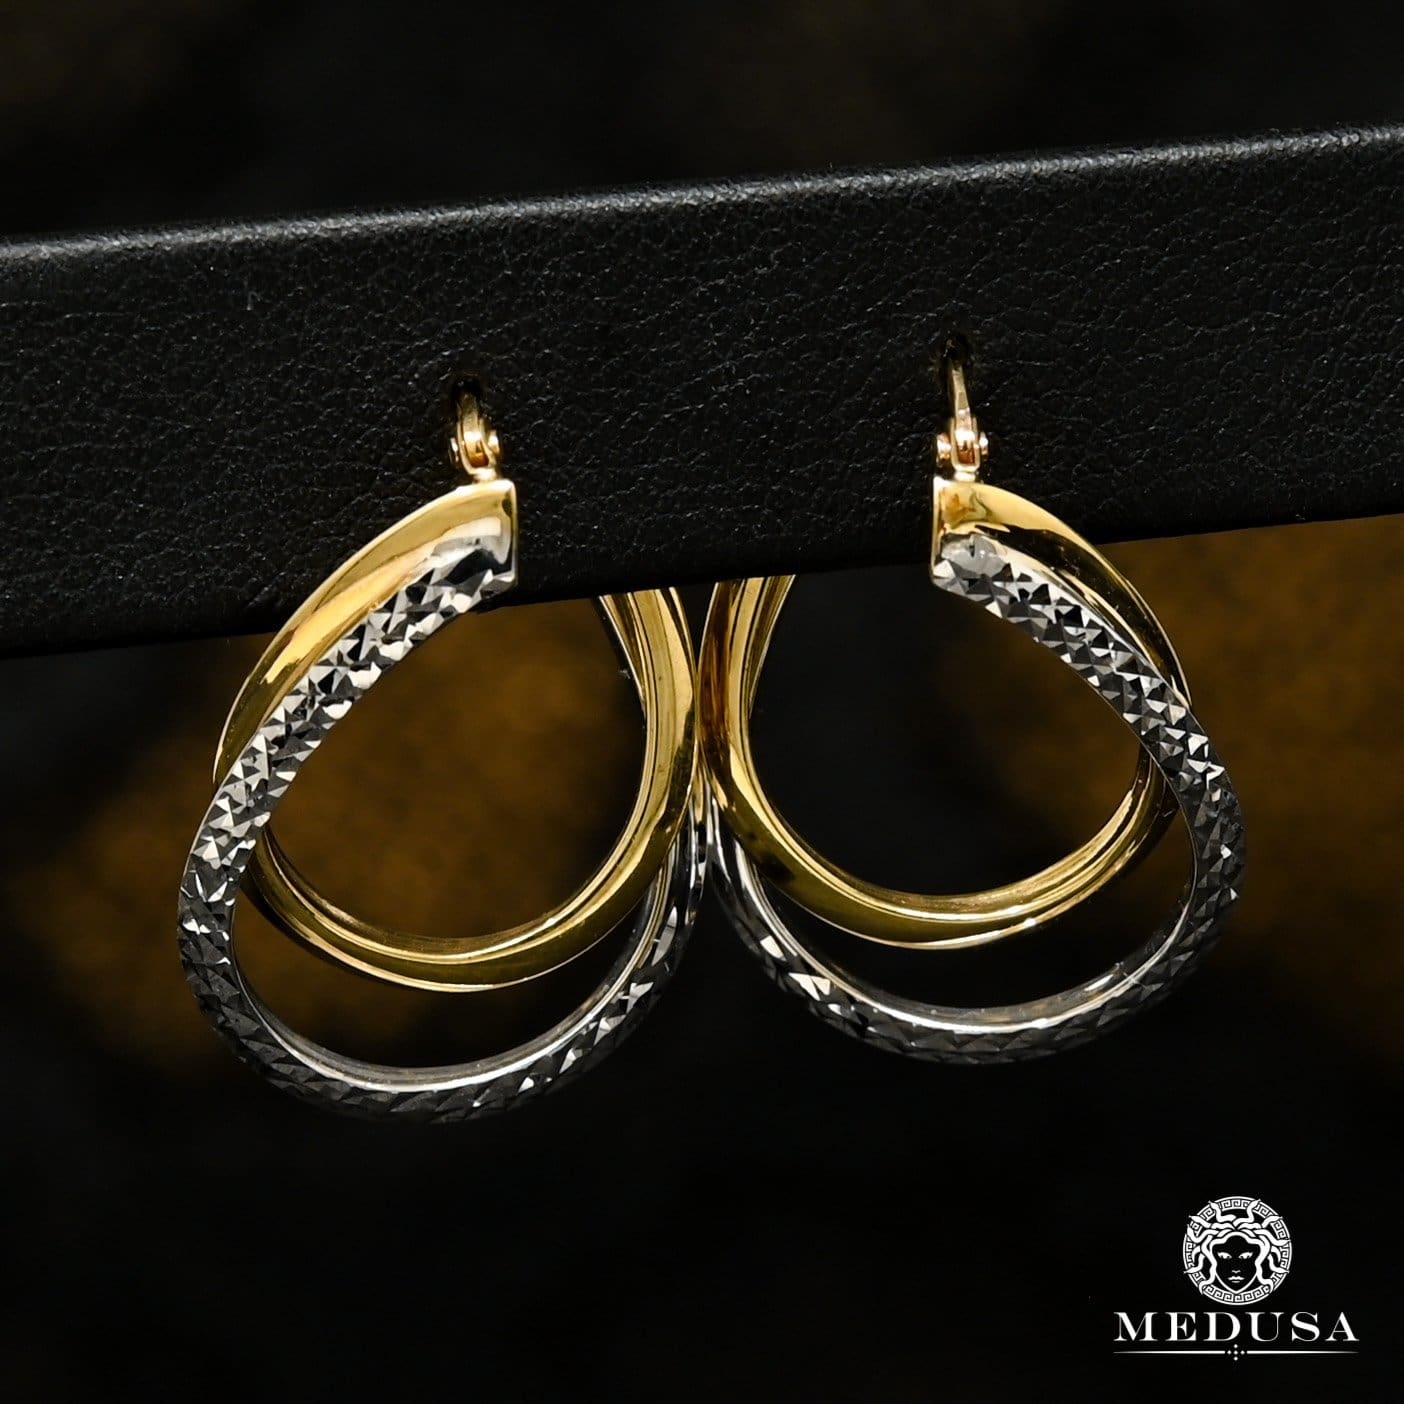 10K Gold Rings | Round F35 2 Tone Gold Earrings